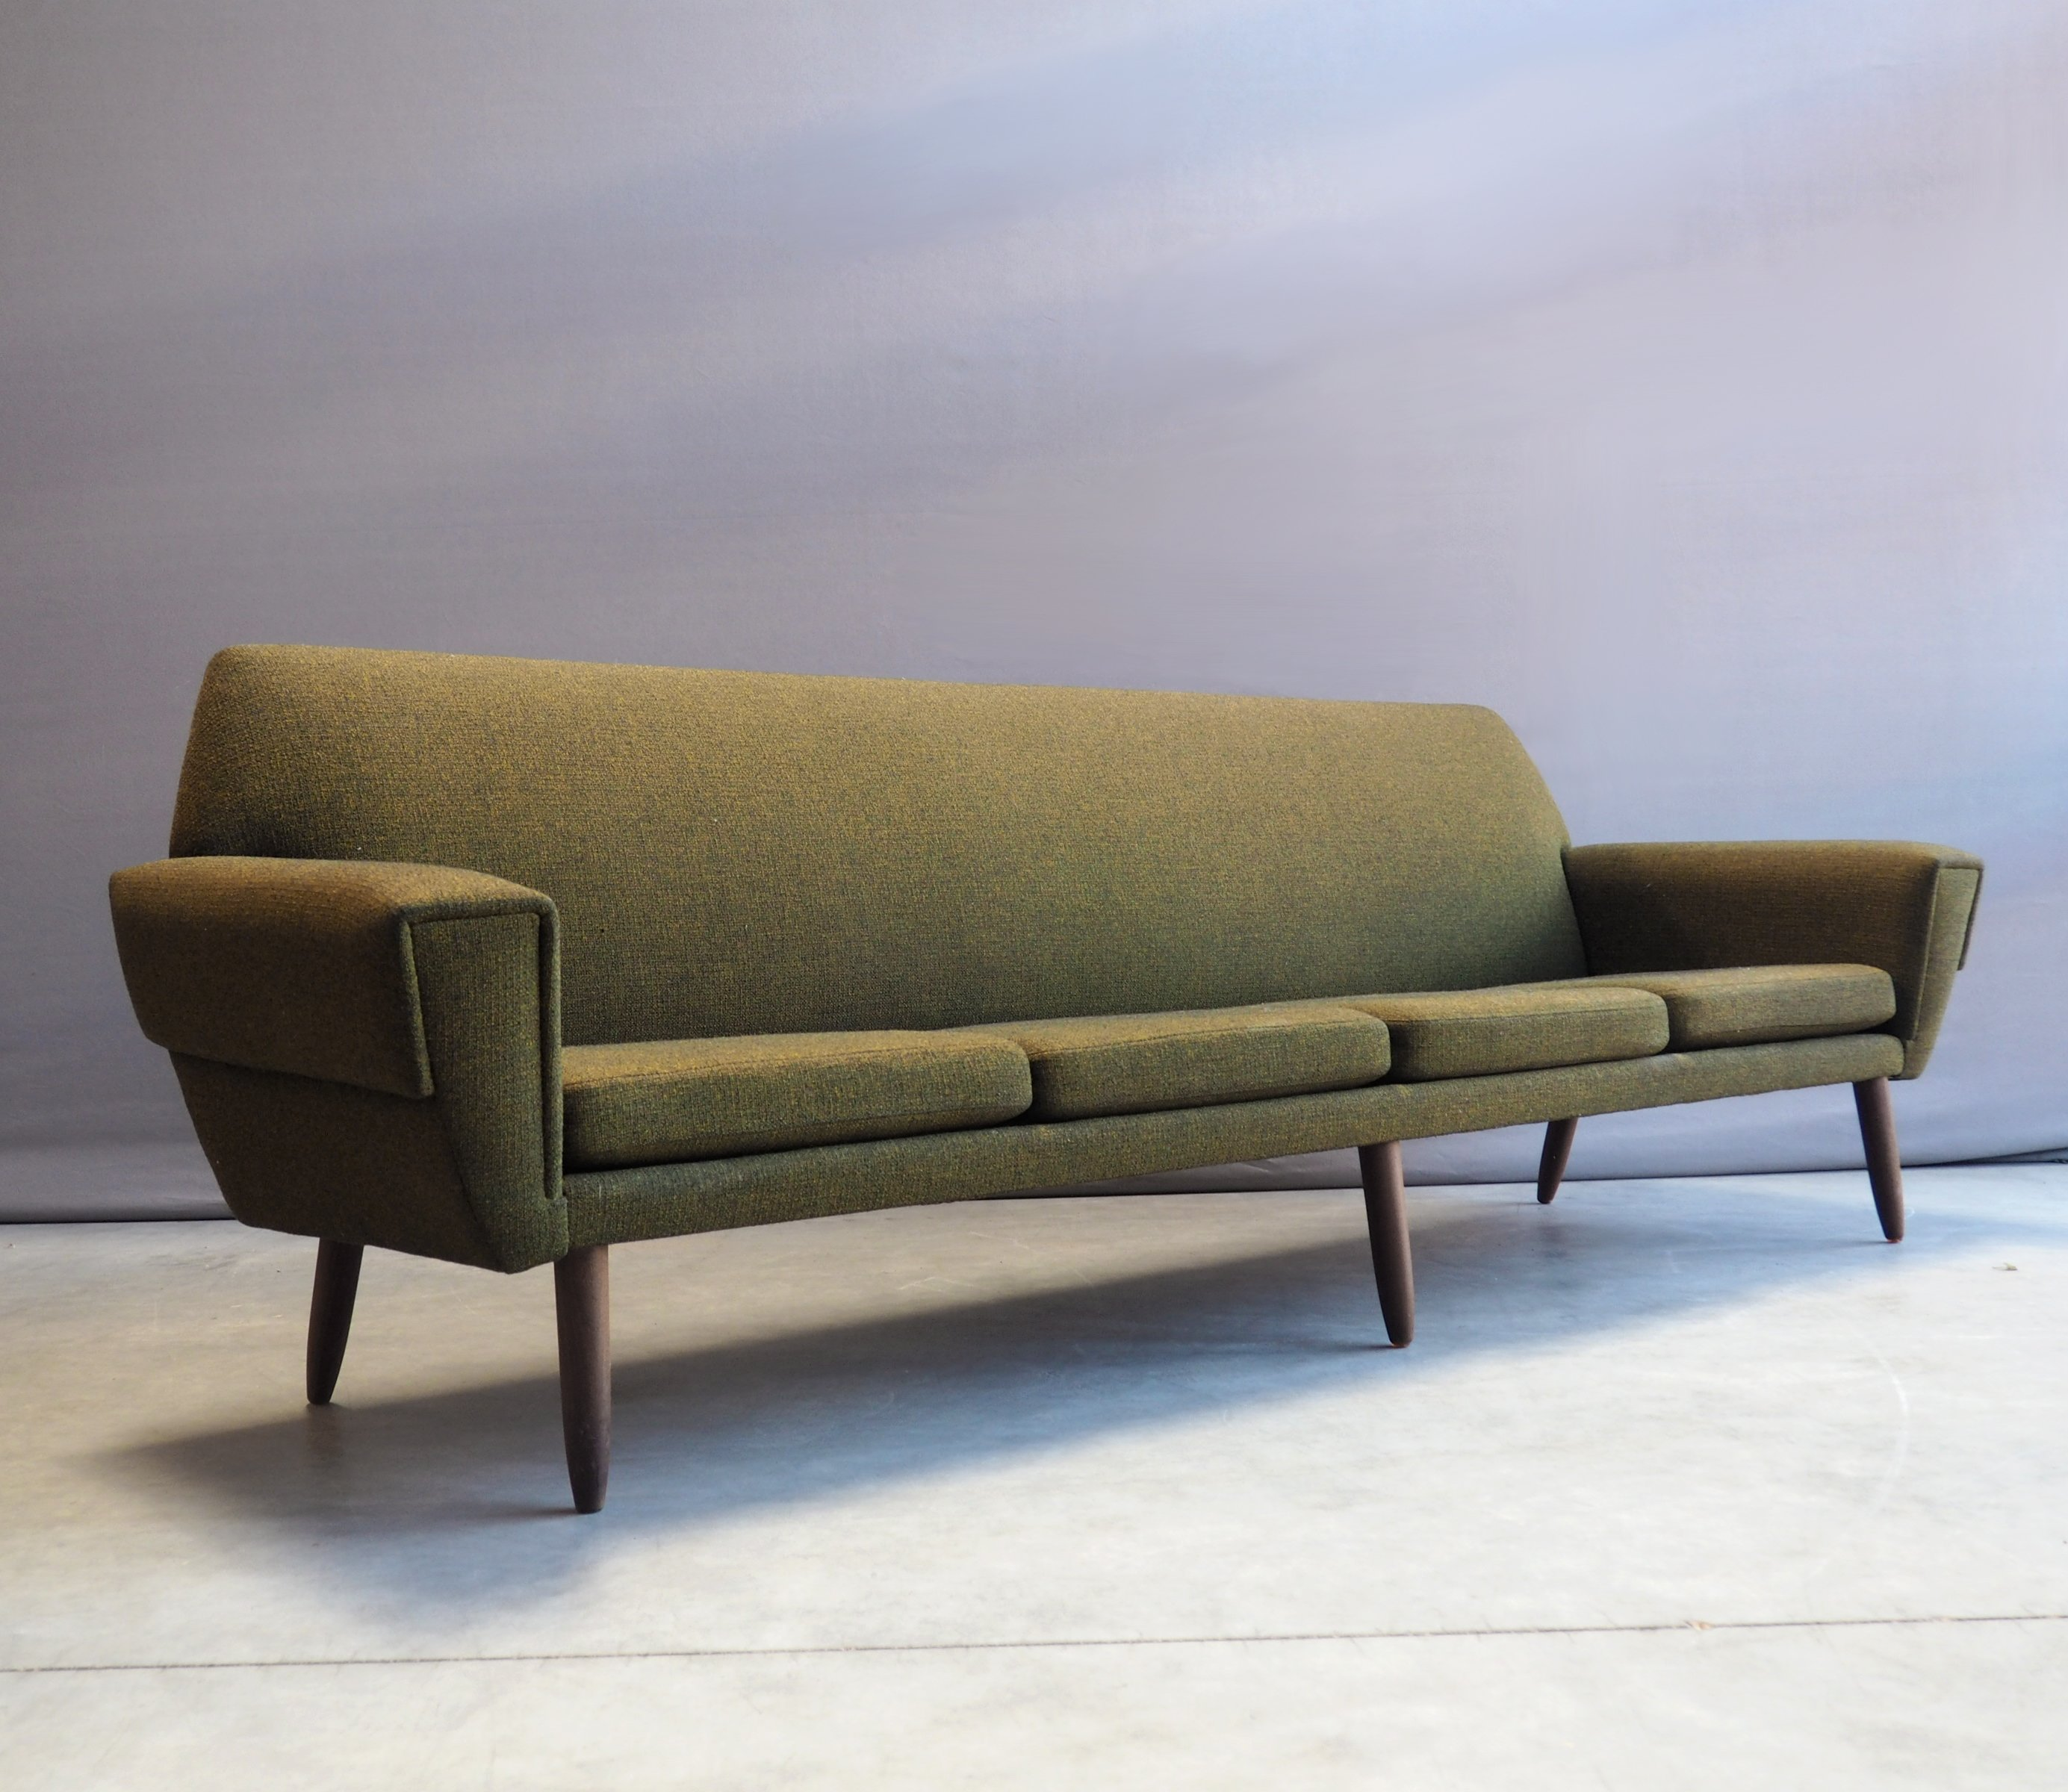 Danish 4 Seater Sofa From The 60